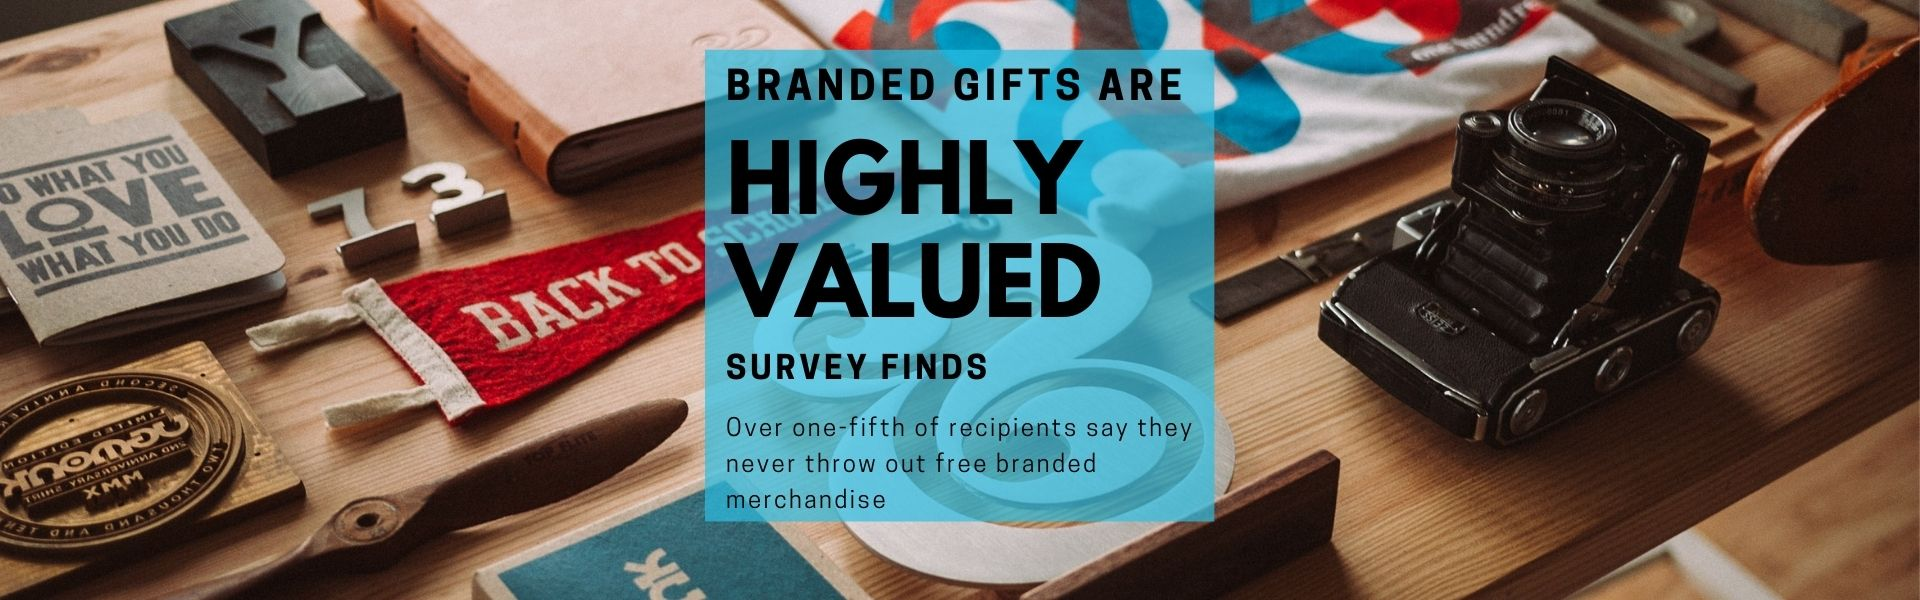 Branded Merchandise Survey Main Image With Branded Merchandise